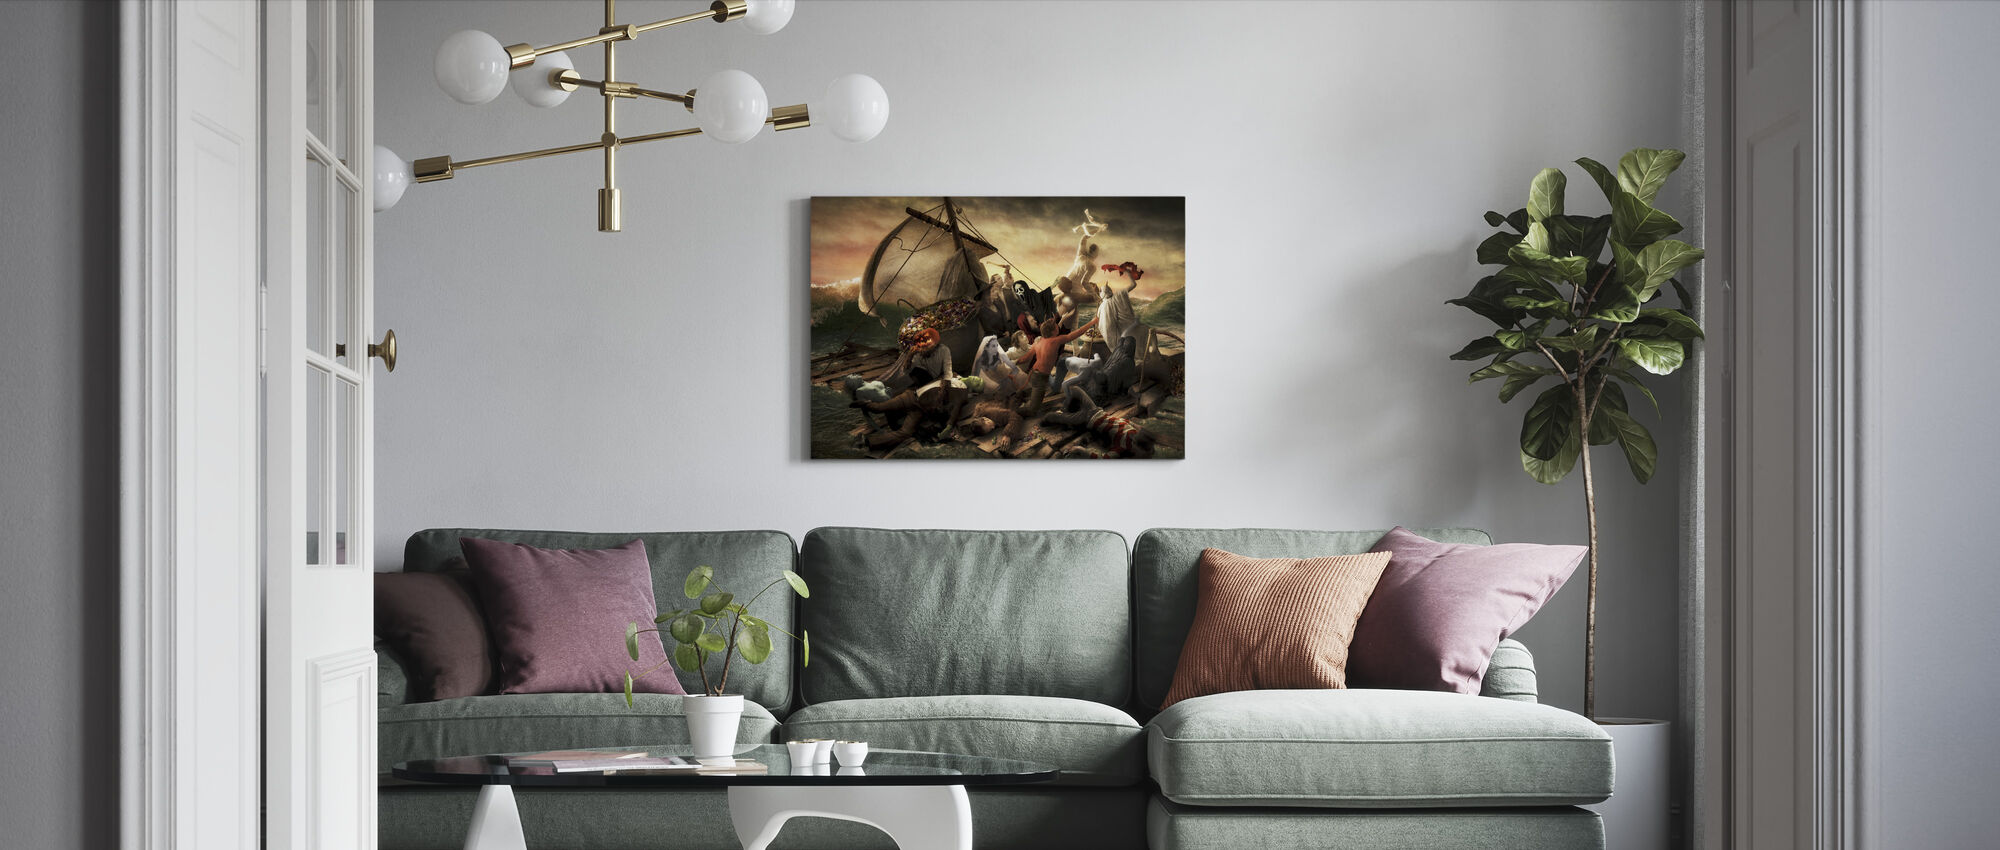 The Raft of Halloween - Canvas print - Living Room